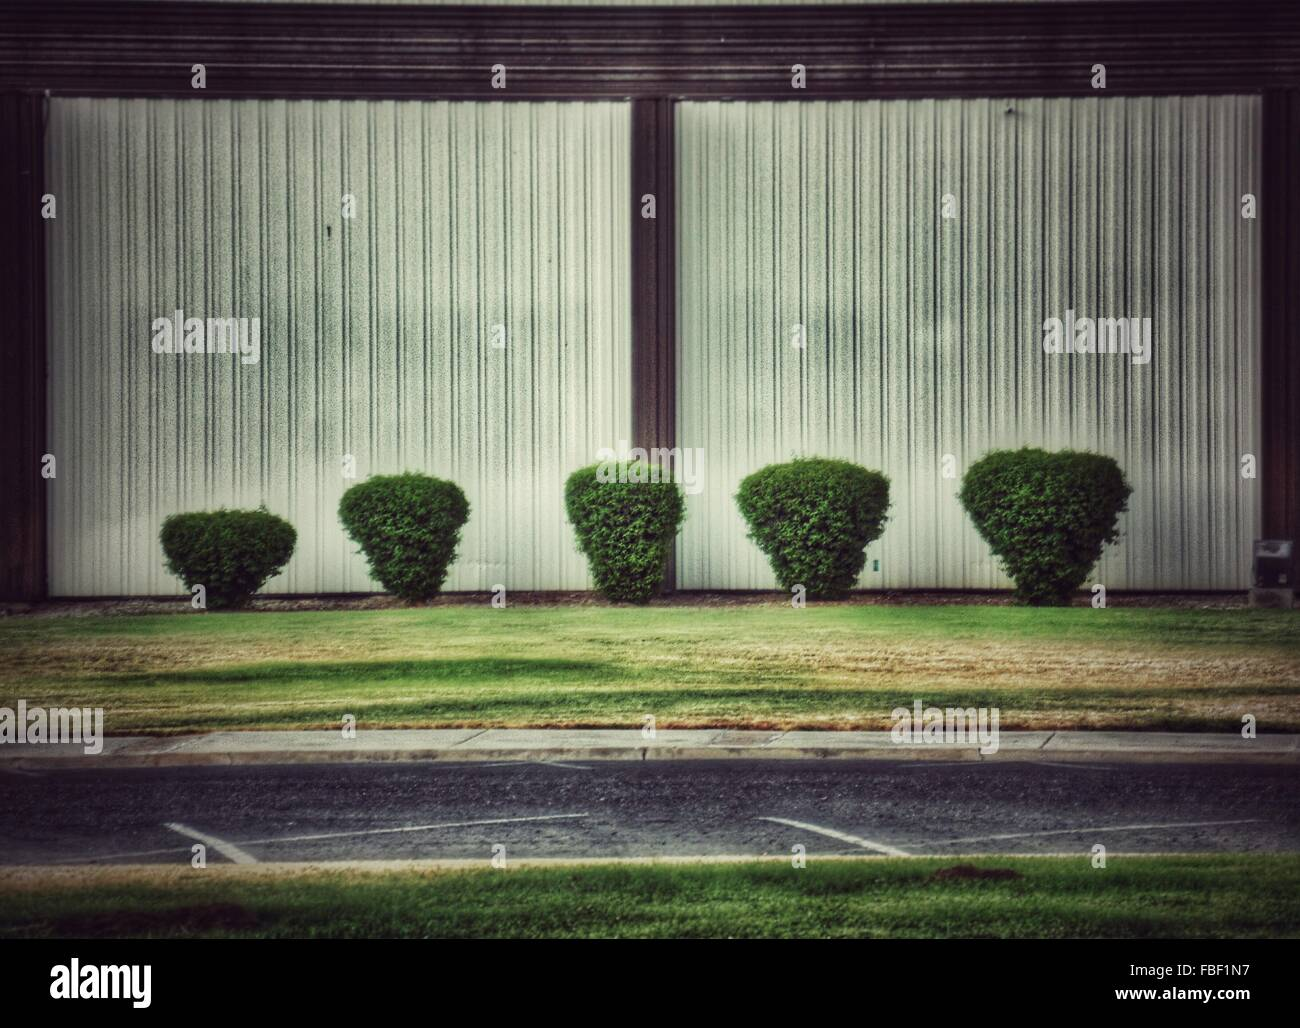 Hedges On Lawn By Street - Stock Image